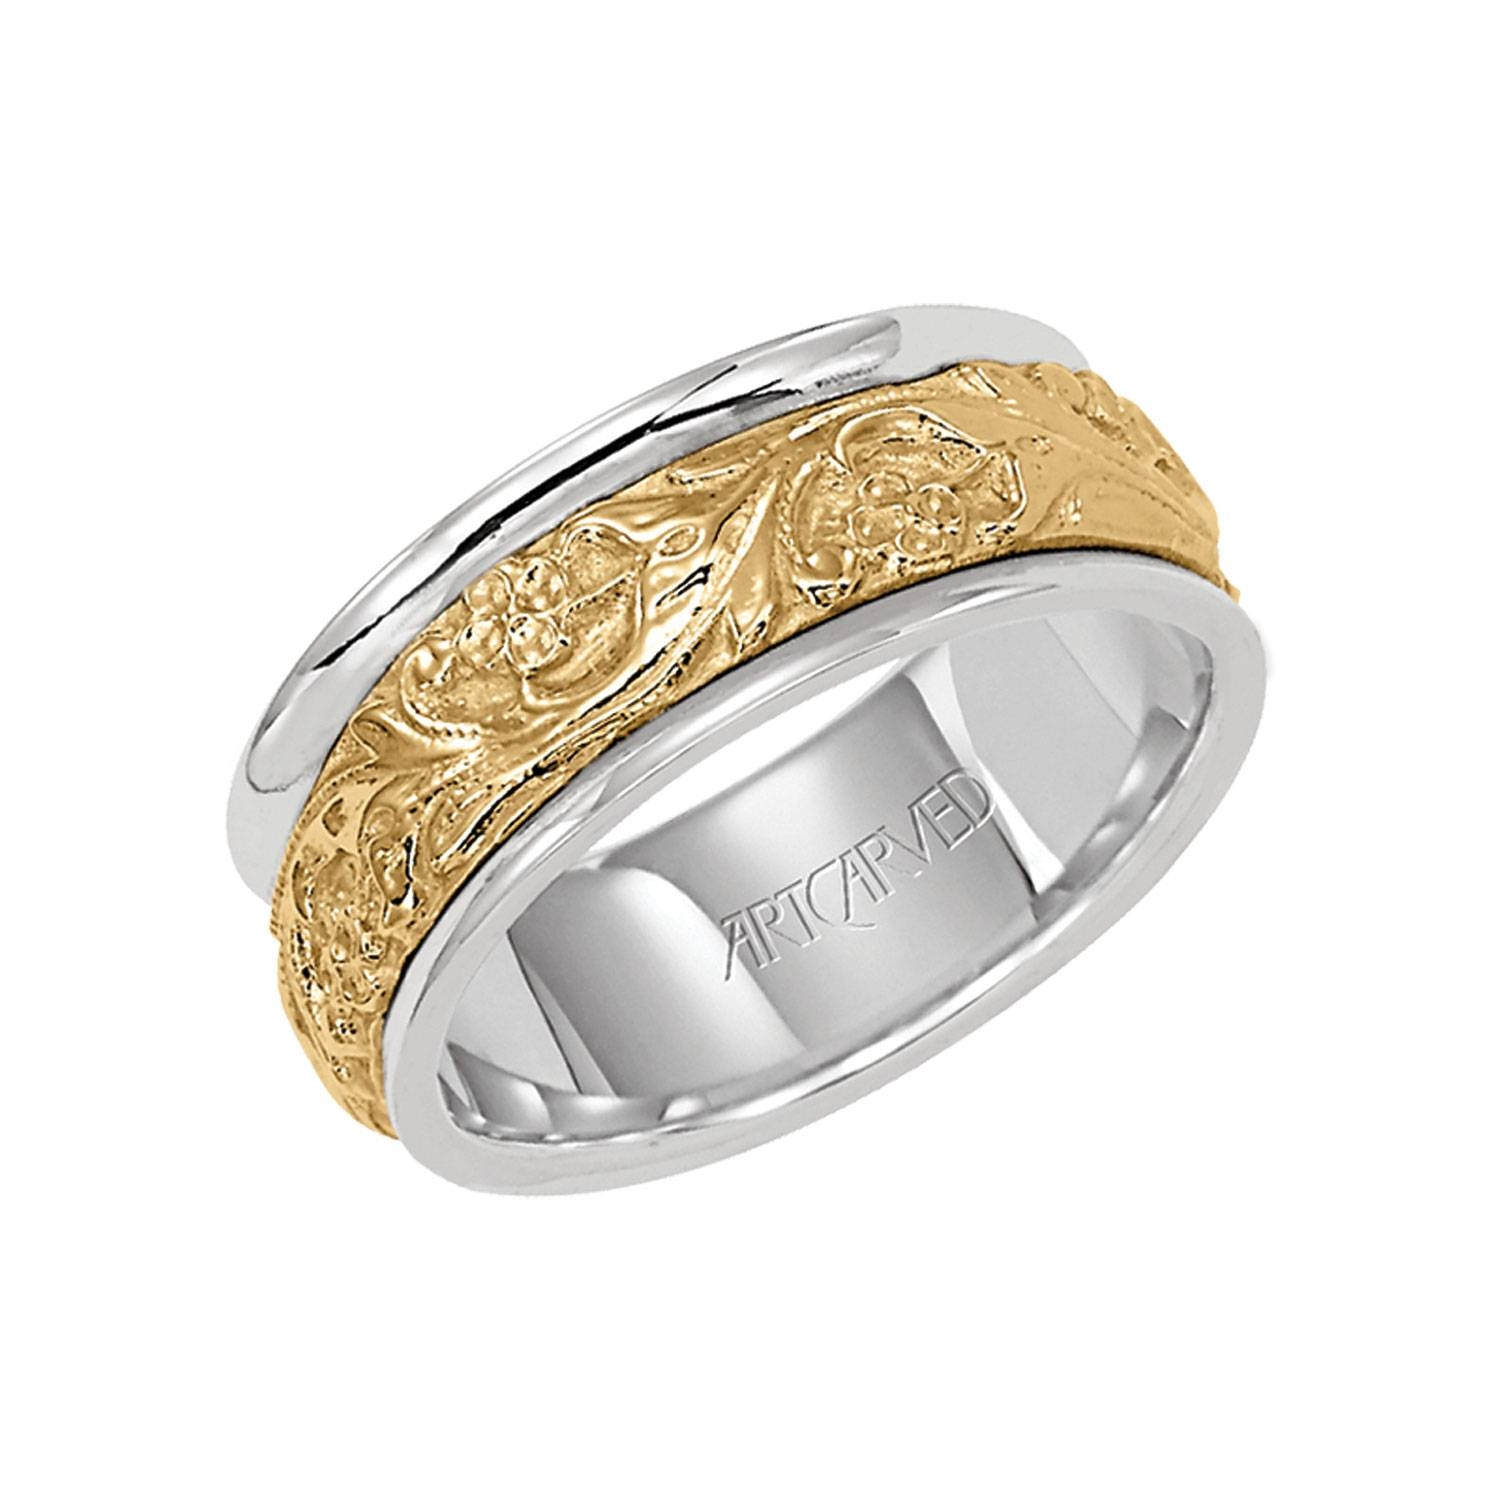 Men's Wedding Bands | Ben Bridge Jeweler Inside Artcarved Men Wedding Bands (View 15 of 15)